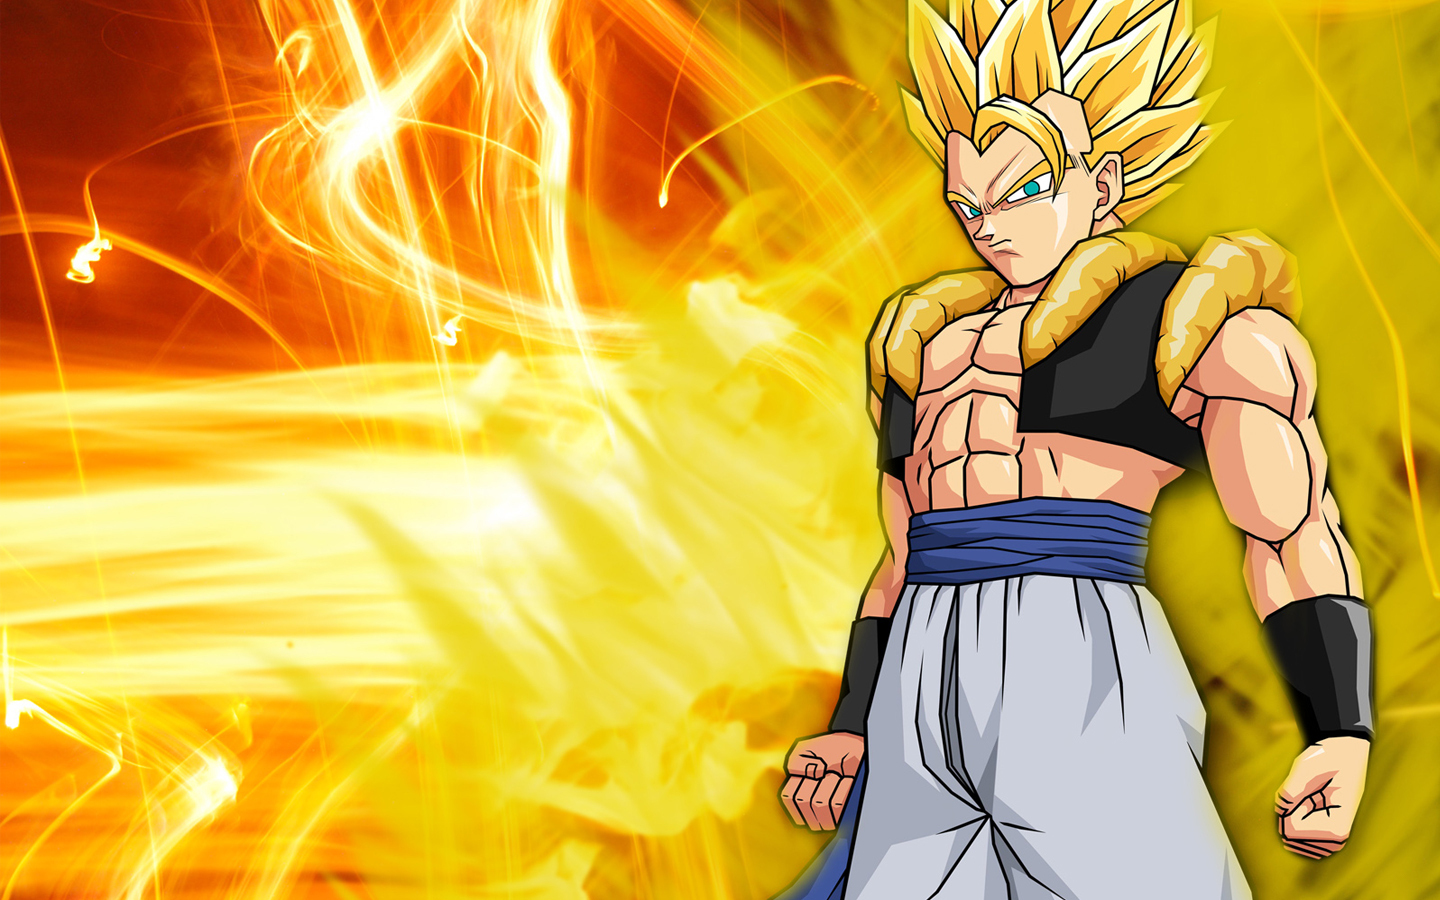 Top 25 Samsung Galaxy S4 Screen Saver Wallpapers: Dragon Ball Z HD Wallpapers